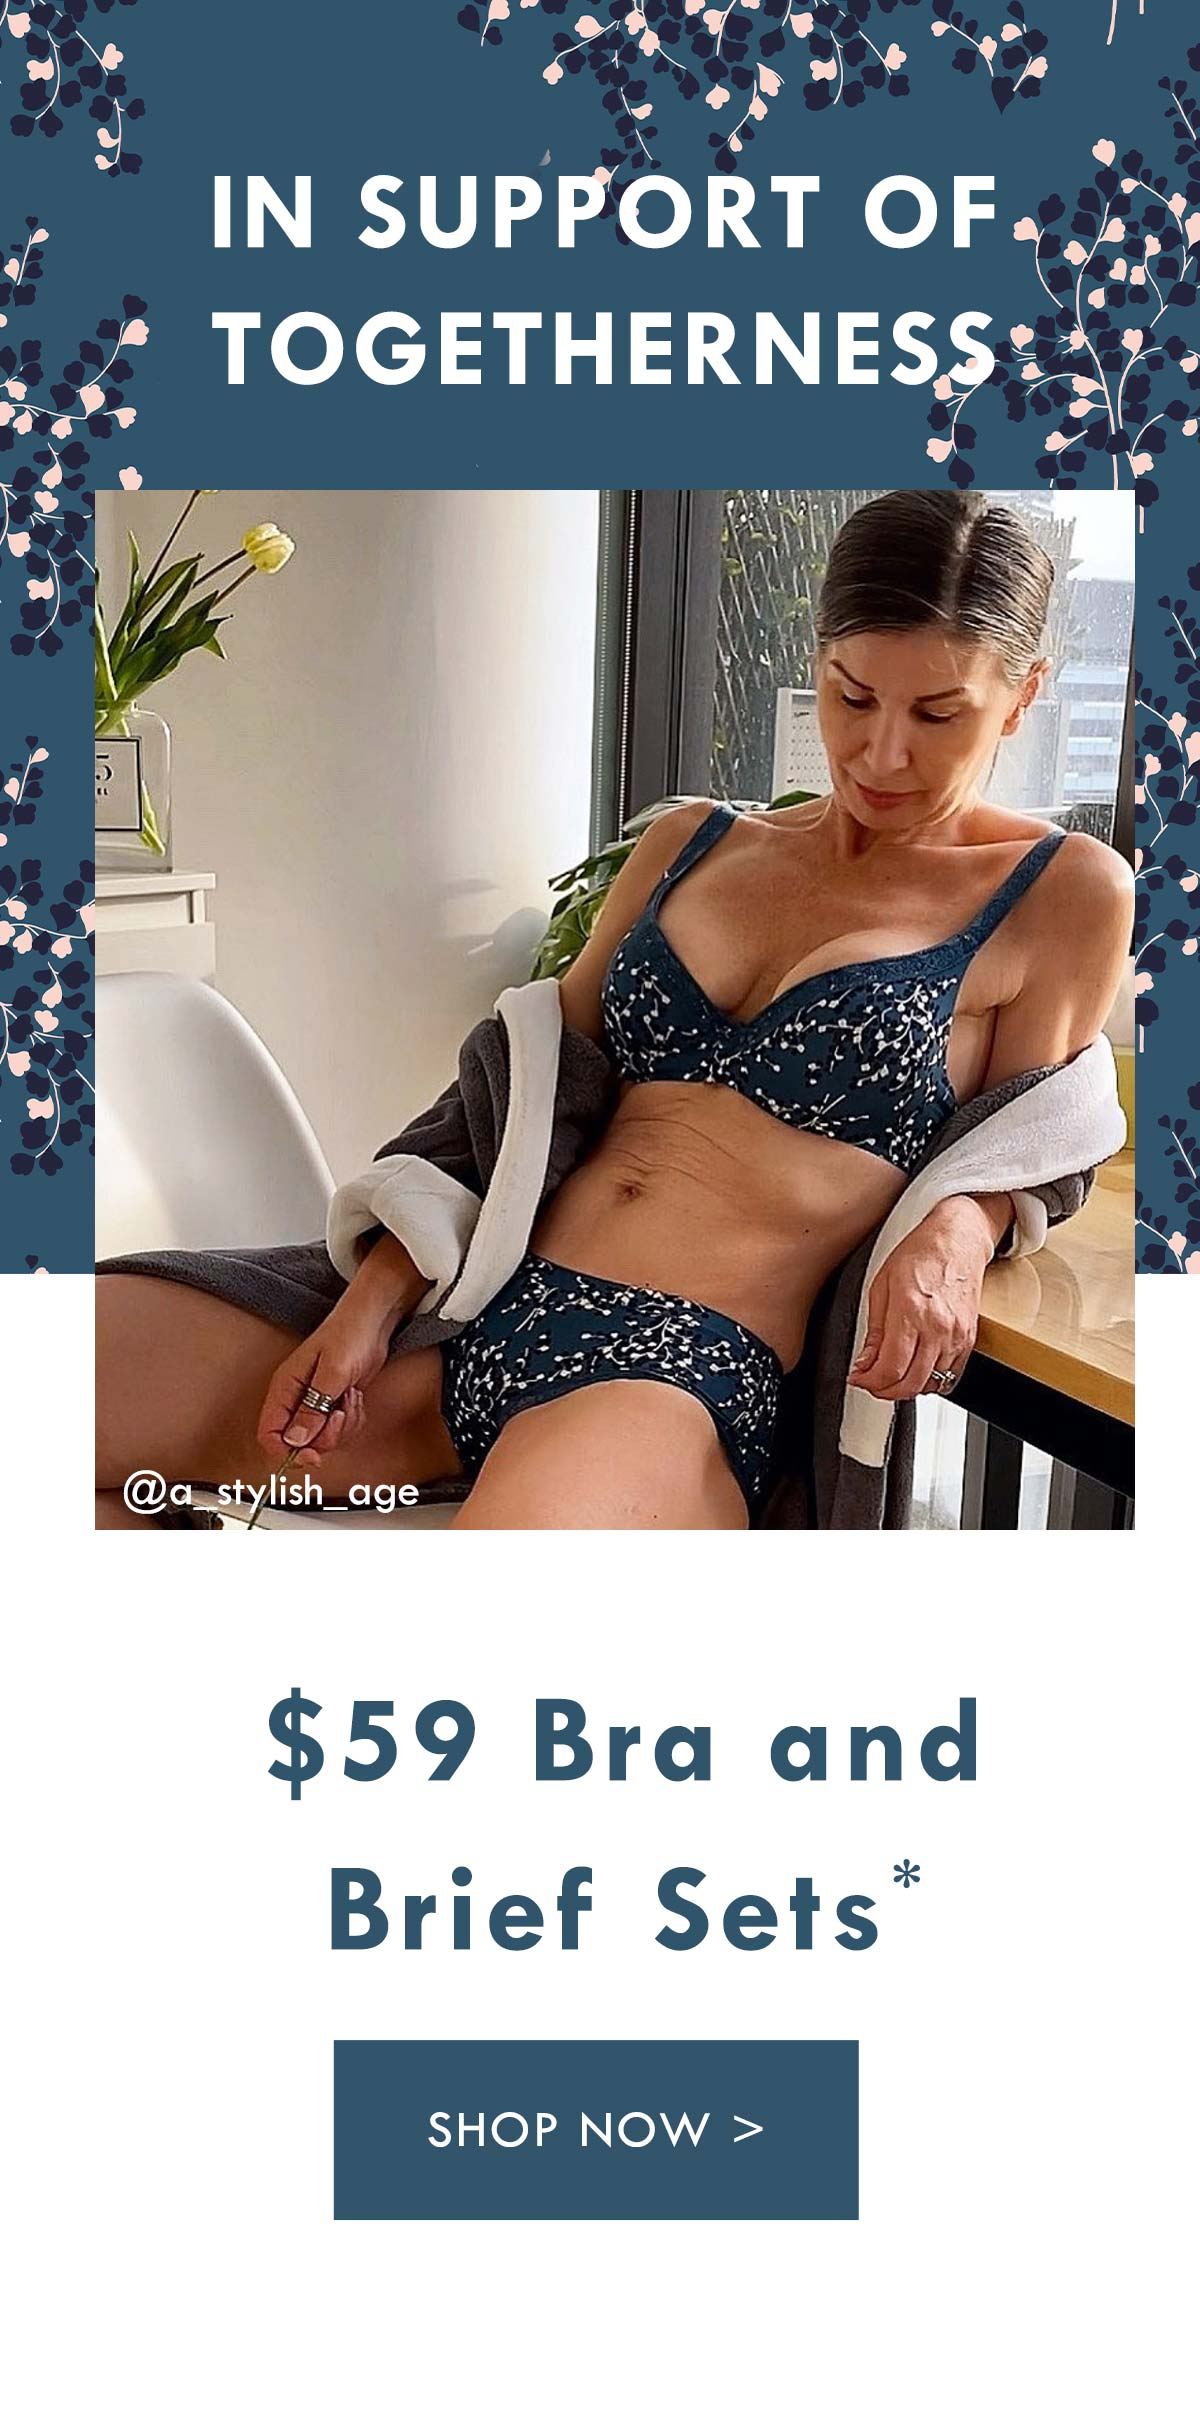 In support of togetherness. $59 Bra and Brief Sets. Shop Now.